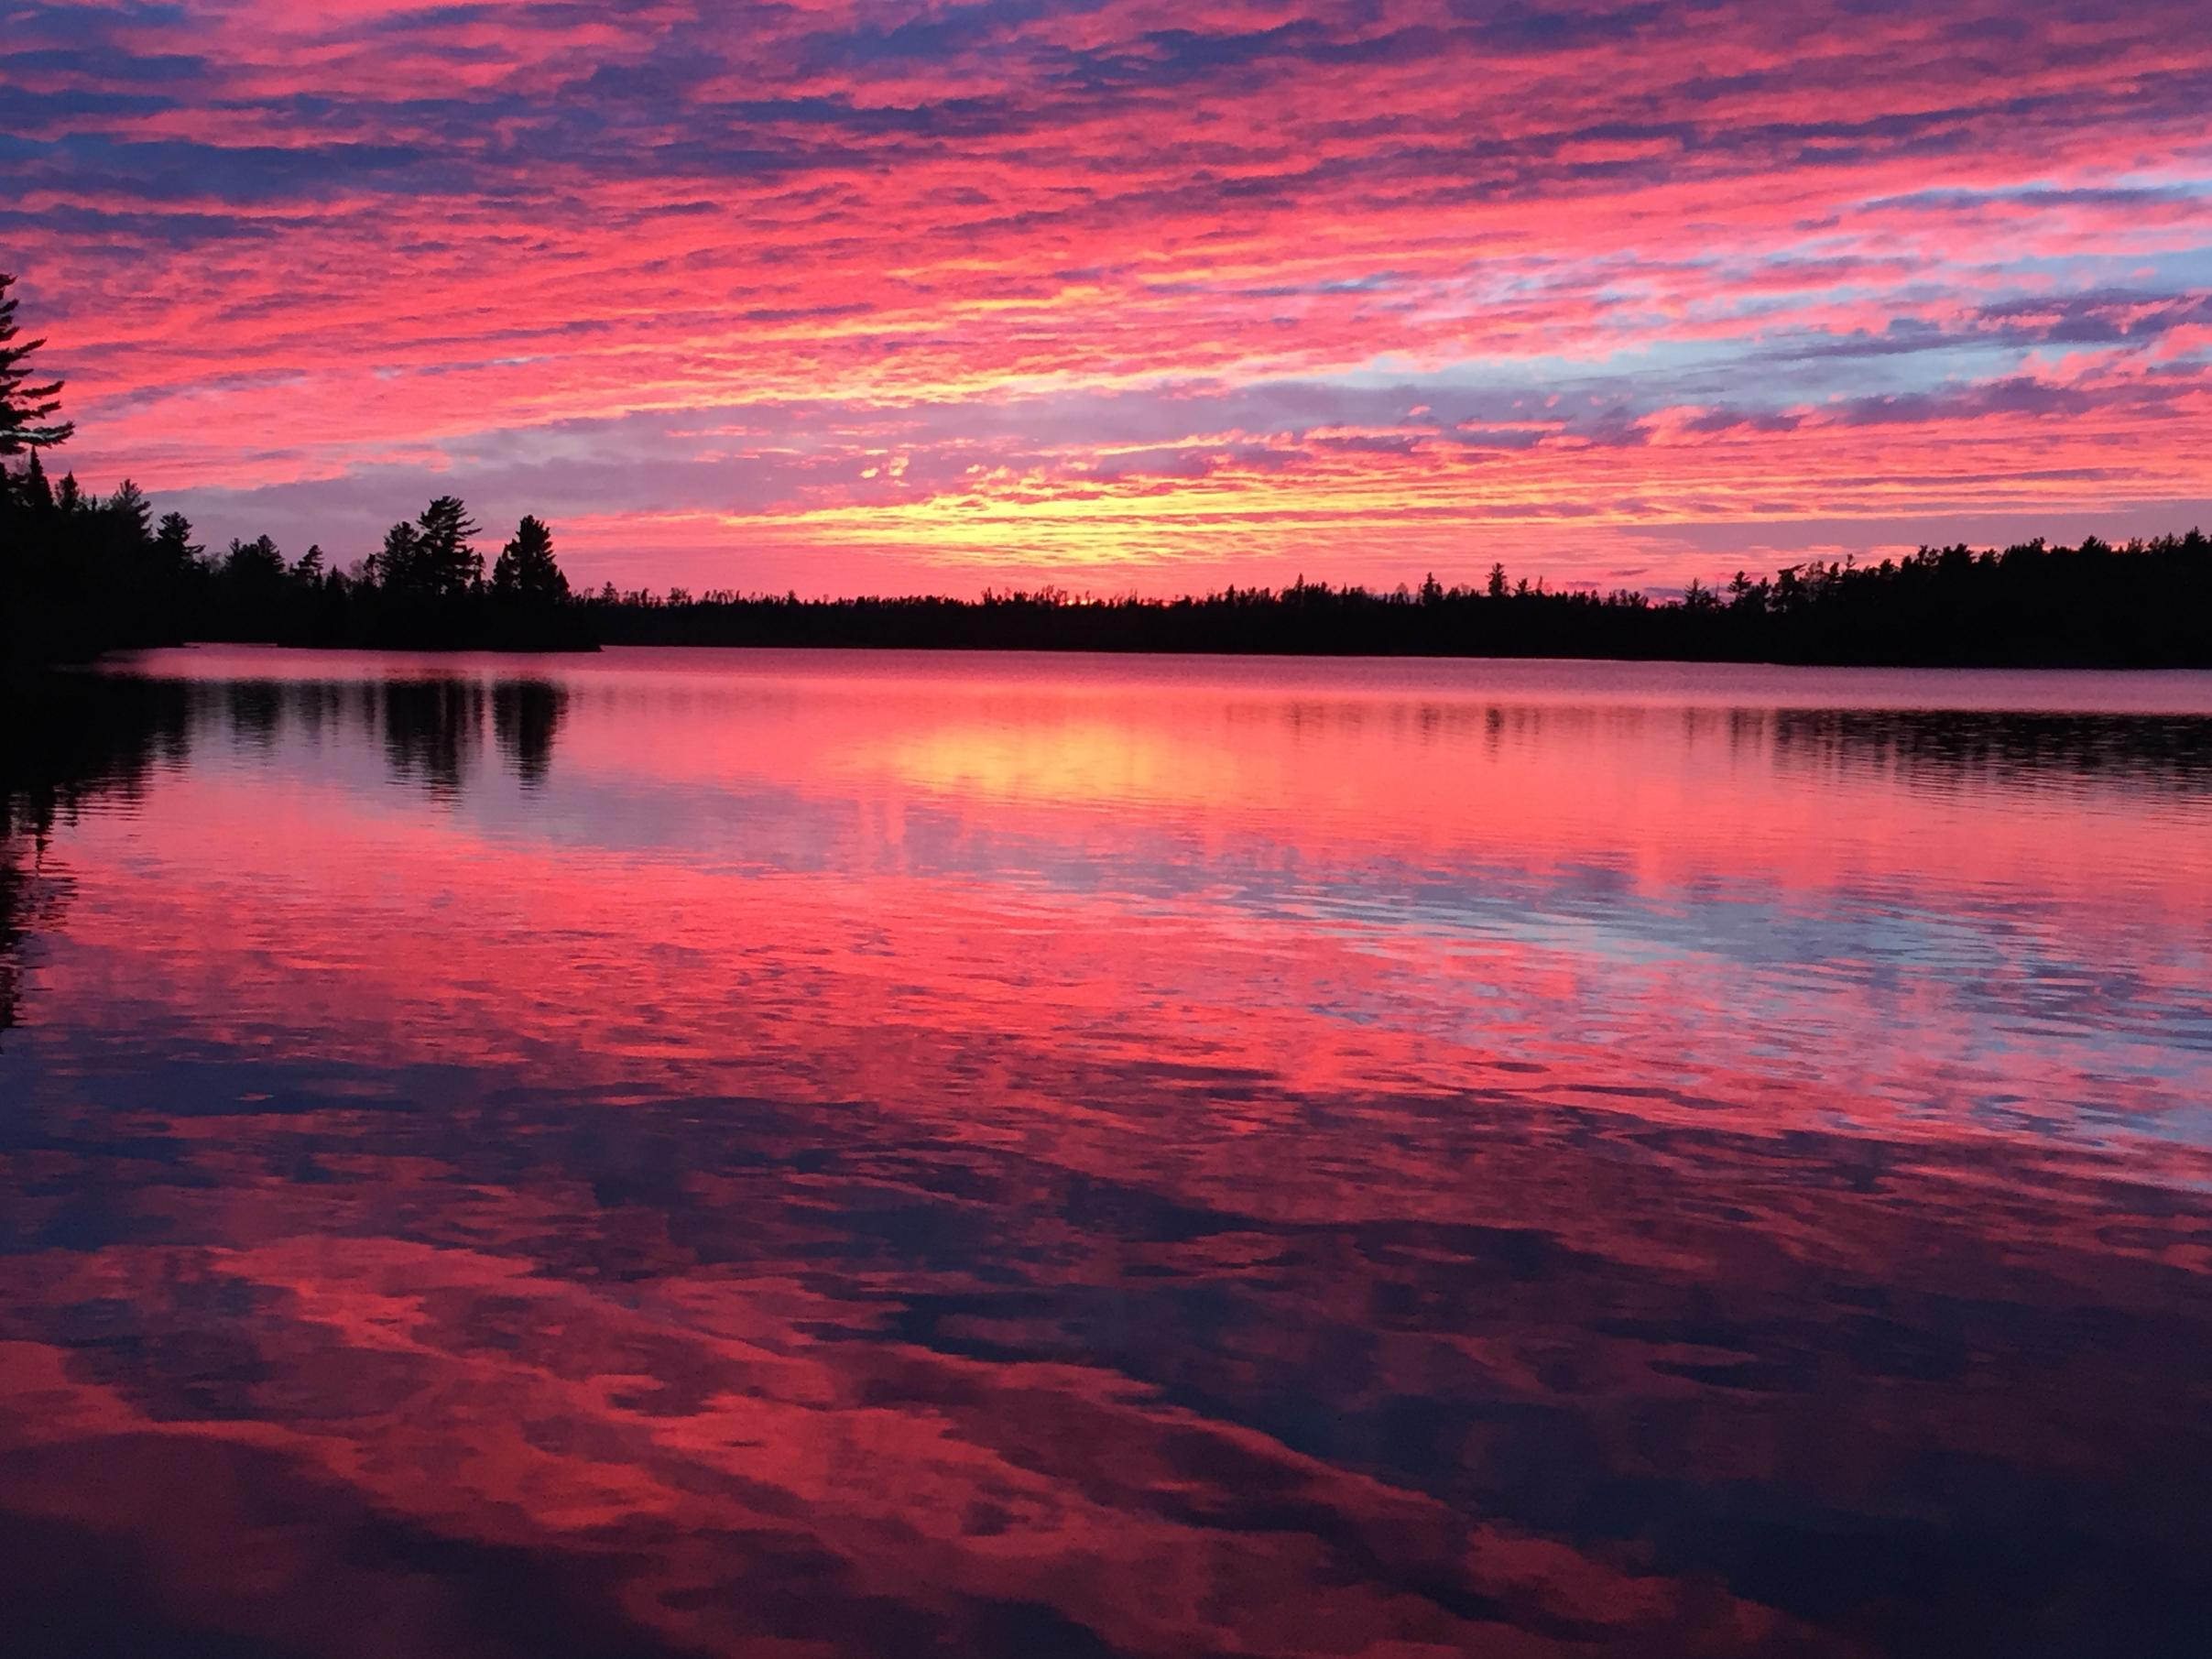 Red sky at night - BWCA'er Delight